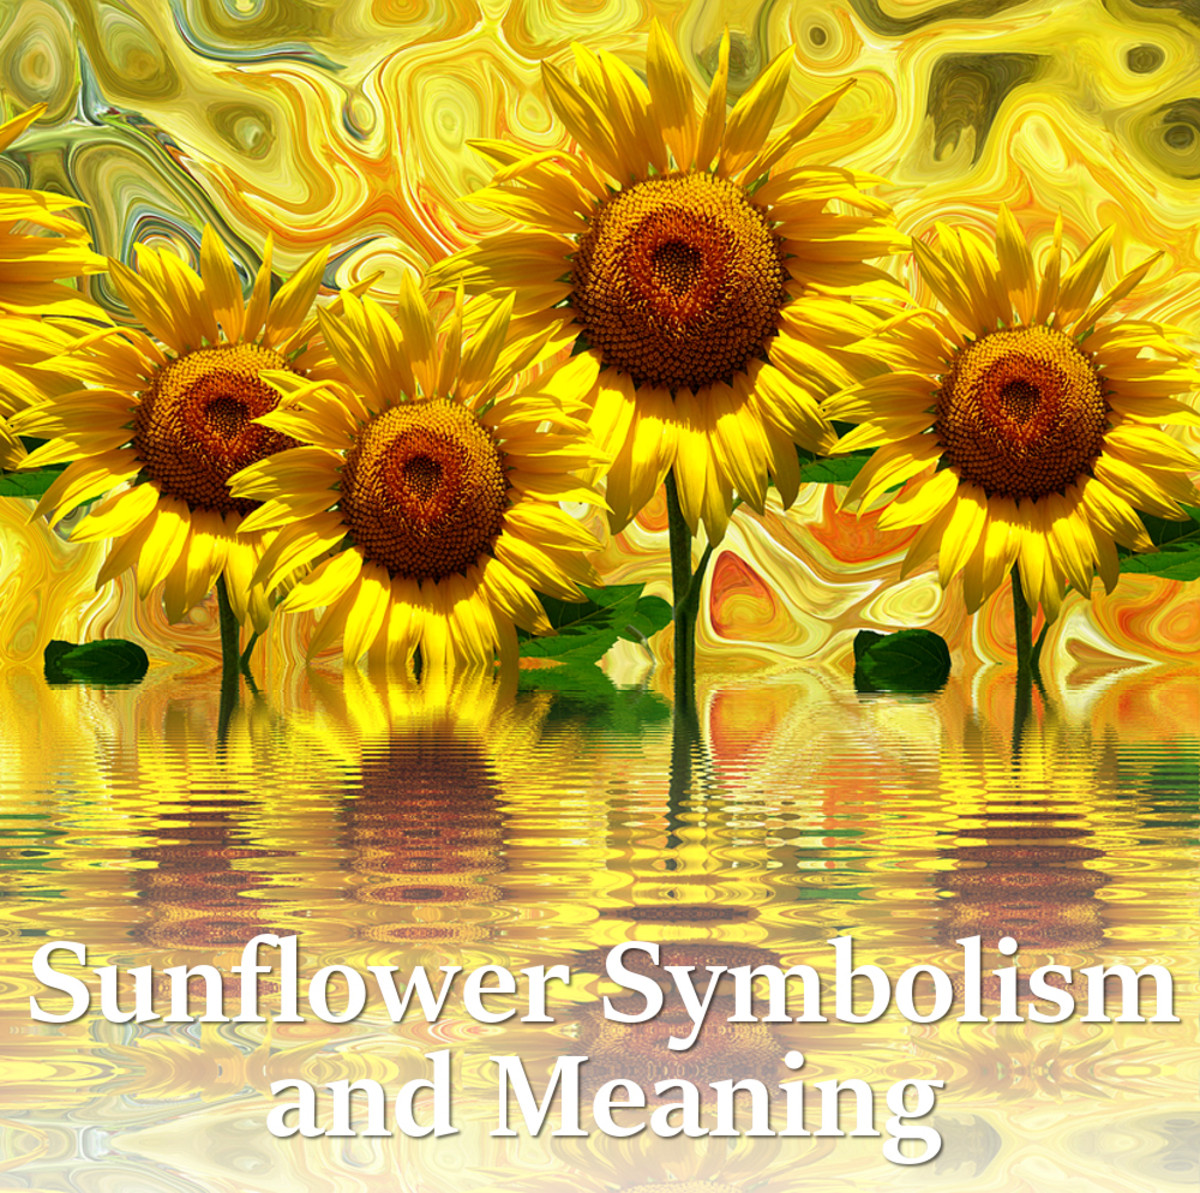 Sunflower Symbolism and Meaning